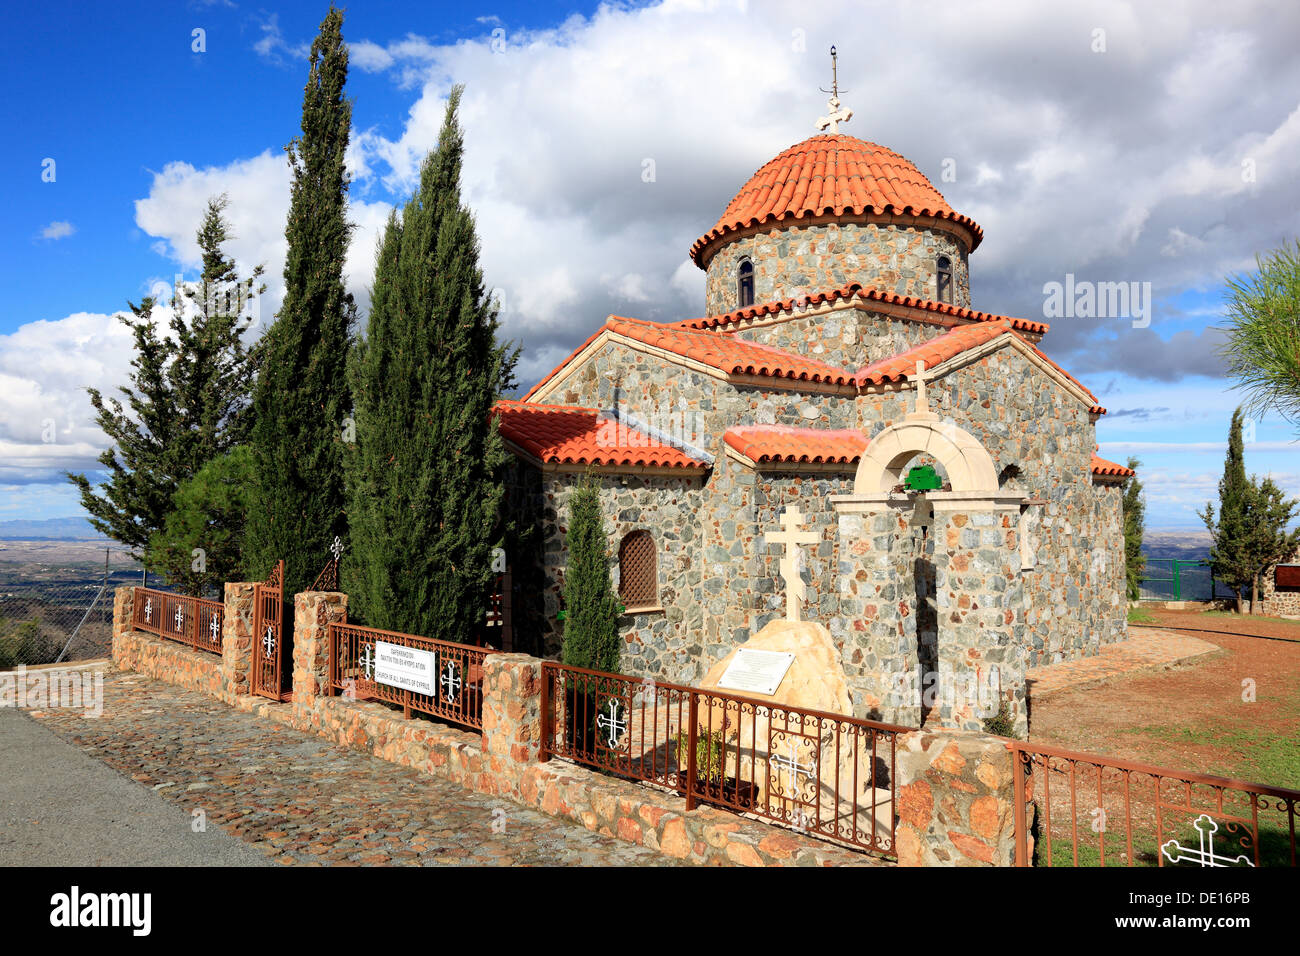 Cyprus, Chapel, Church Of All Saints of Cyprus at the monastery Stavrovouni - Stock Image